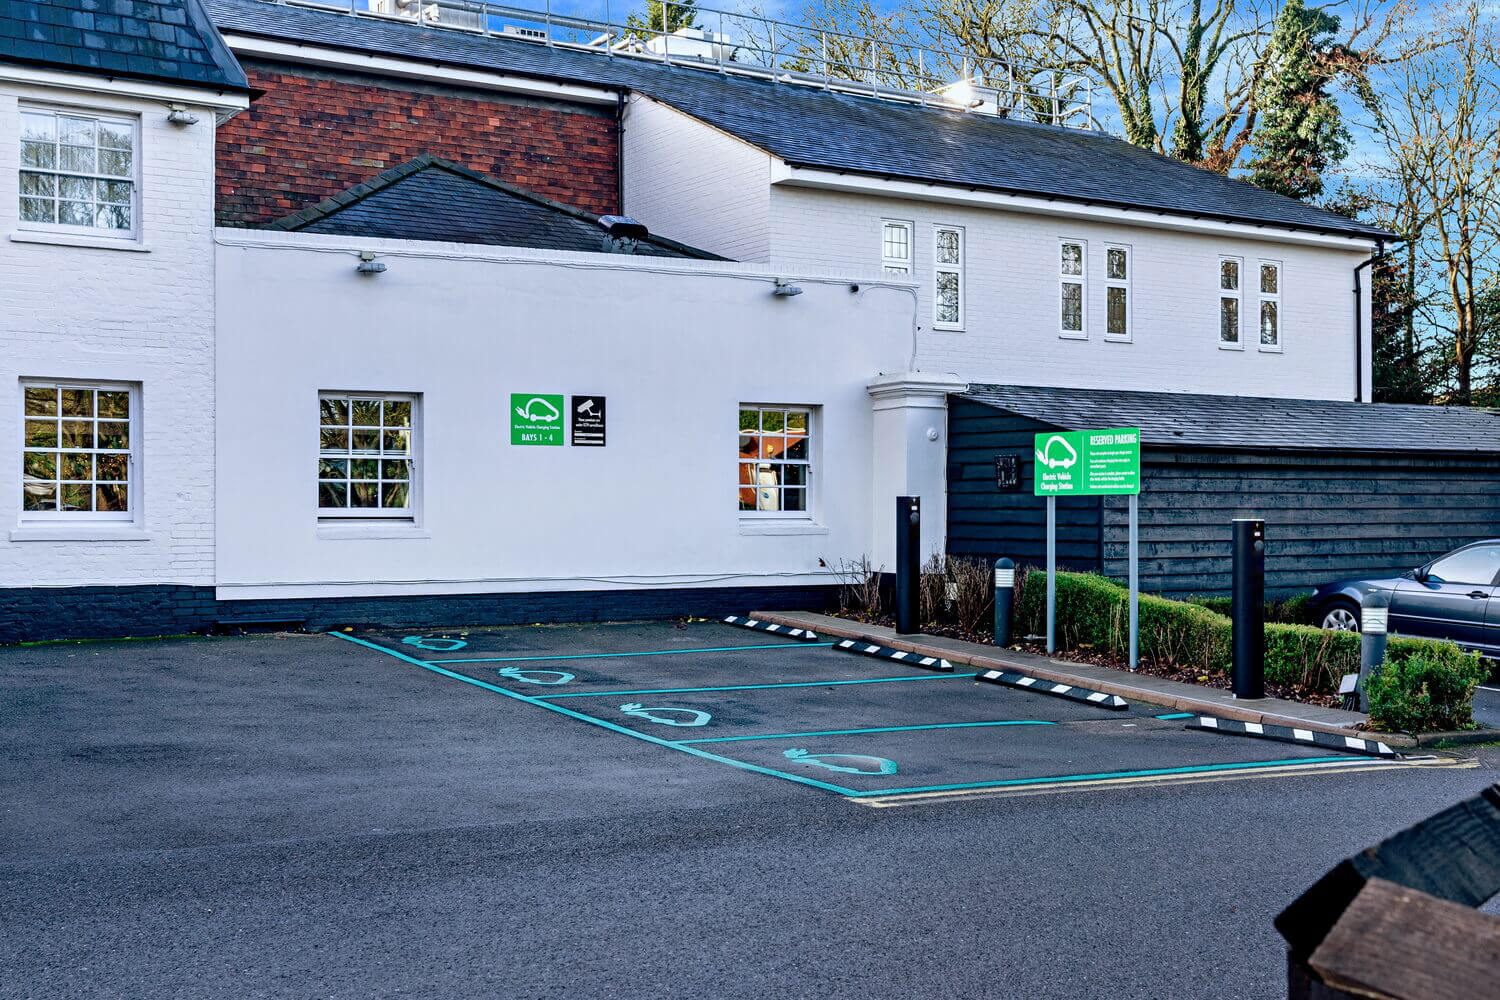 Ev charging spaces at the bull hotel